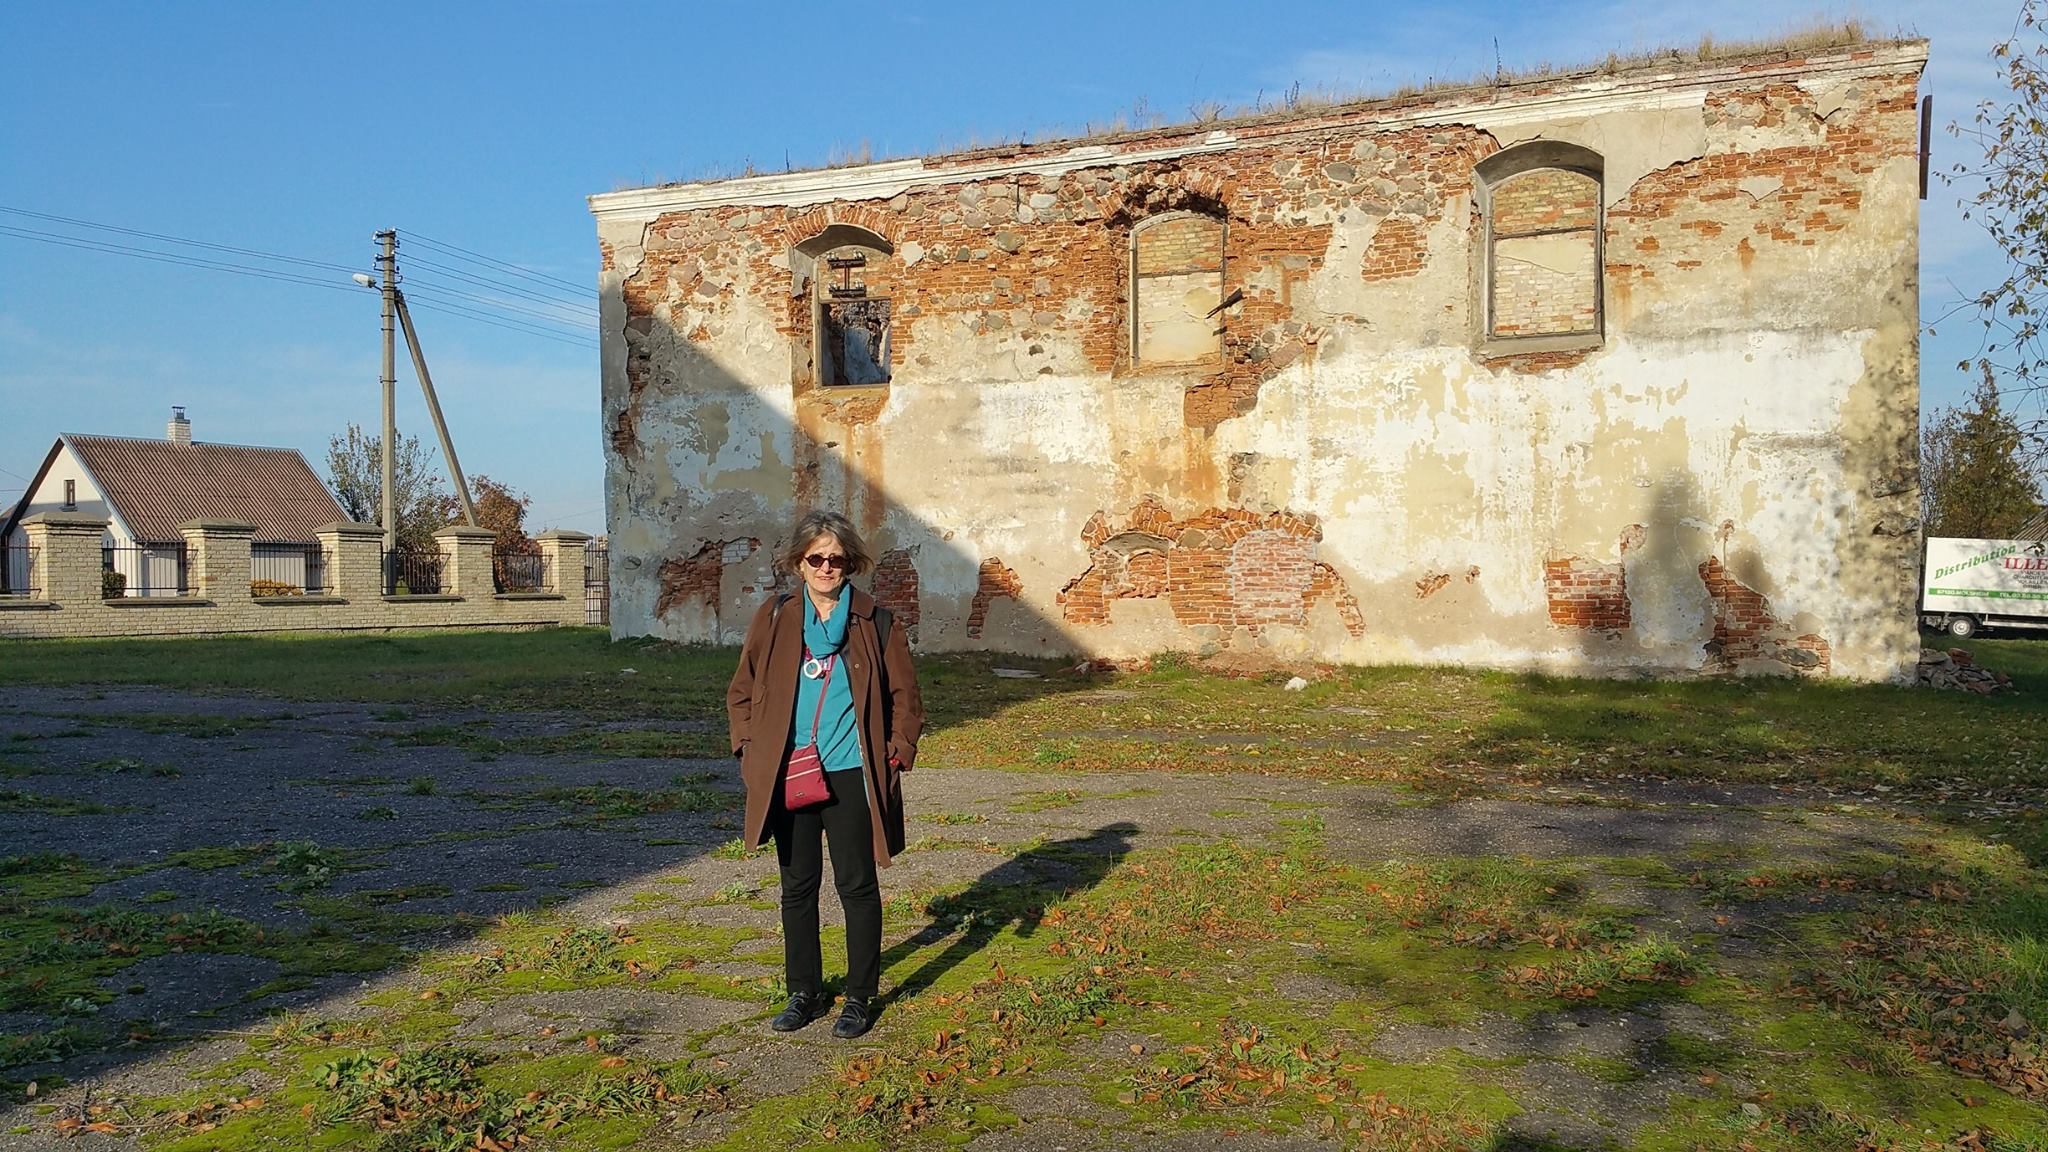 Ruth Ellen Gruber in front of the ruined Great Synagogue in Kalvarija, Lithuania - the town where her great-grandparents were from. Photo: Samuel D. Gruber